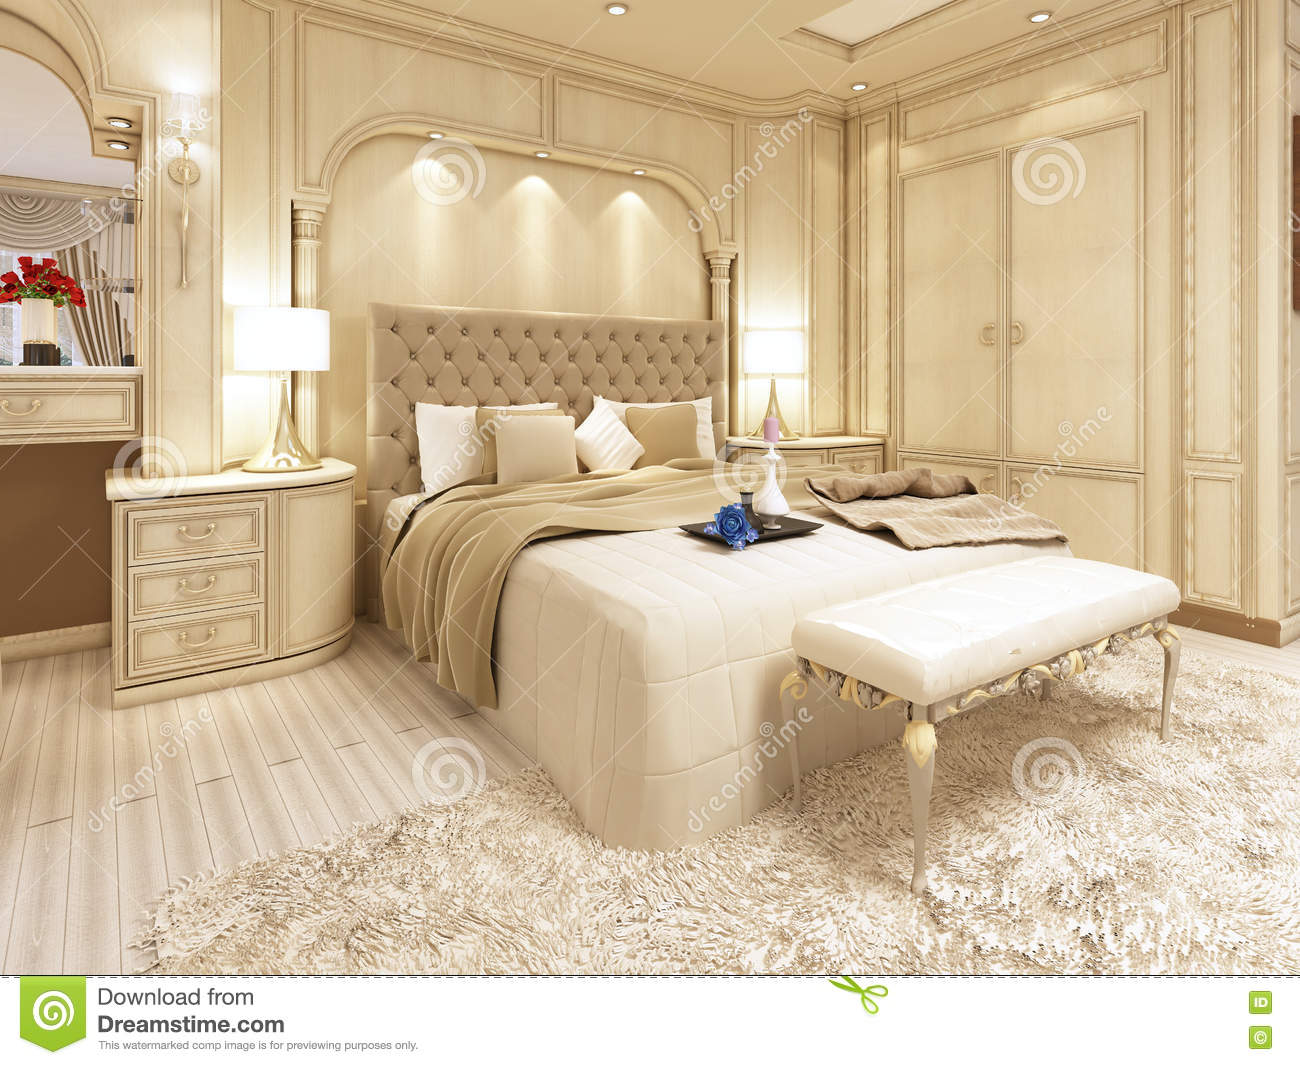 . Luxury Bed In A Large Neoclassical Bedroom With Decorative Niche